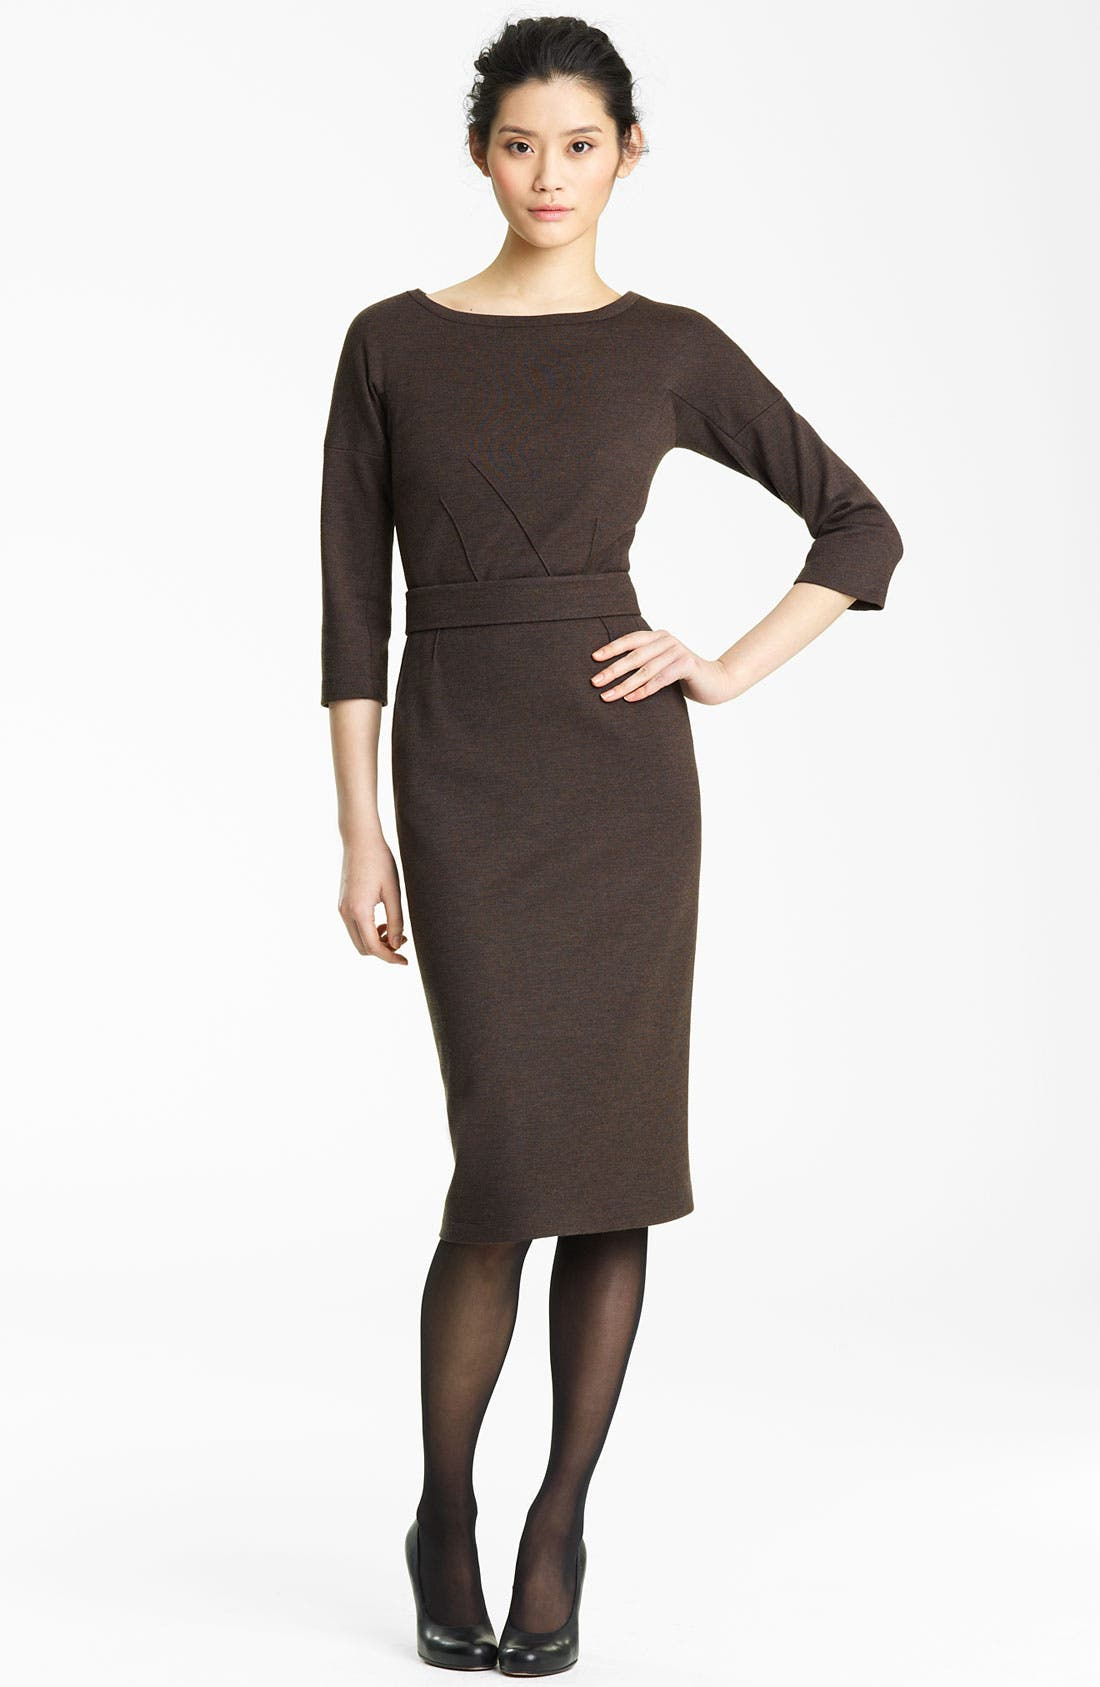 Alternate Image 1 Selected - Lida Baday Double Knit Wool Dress